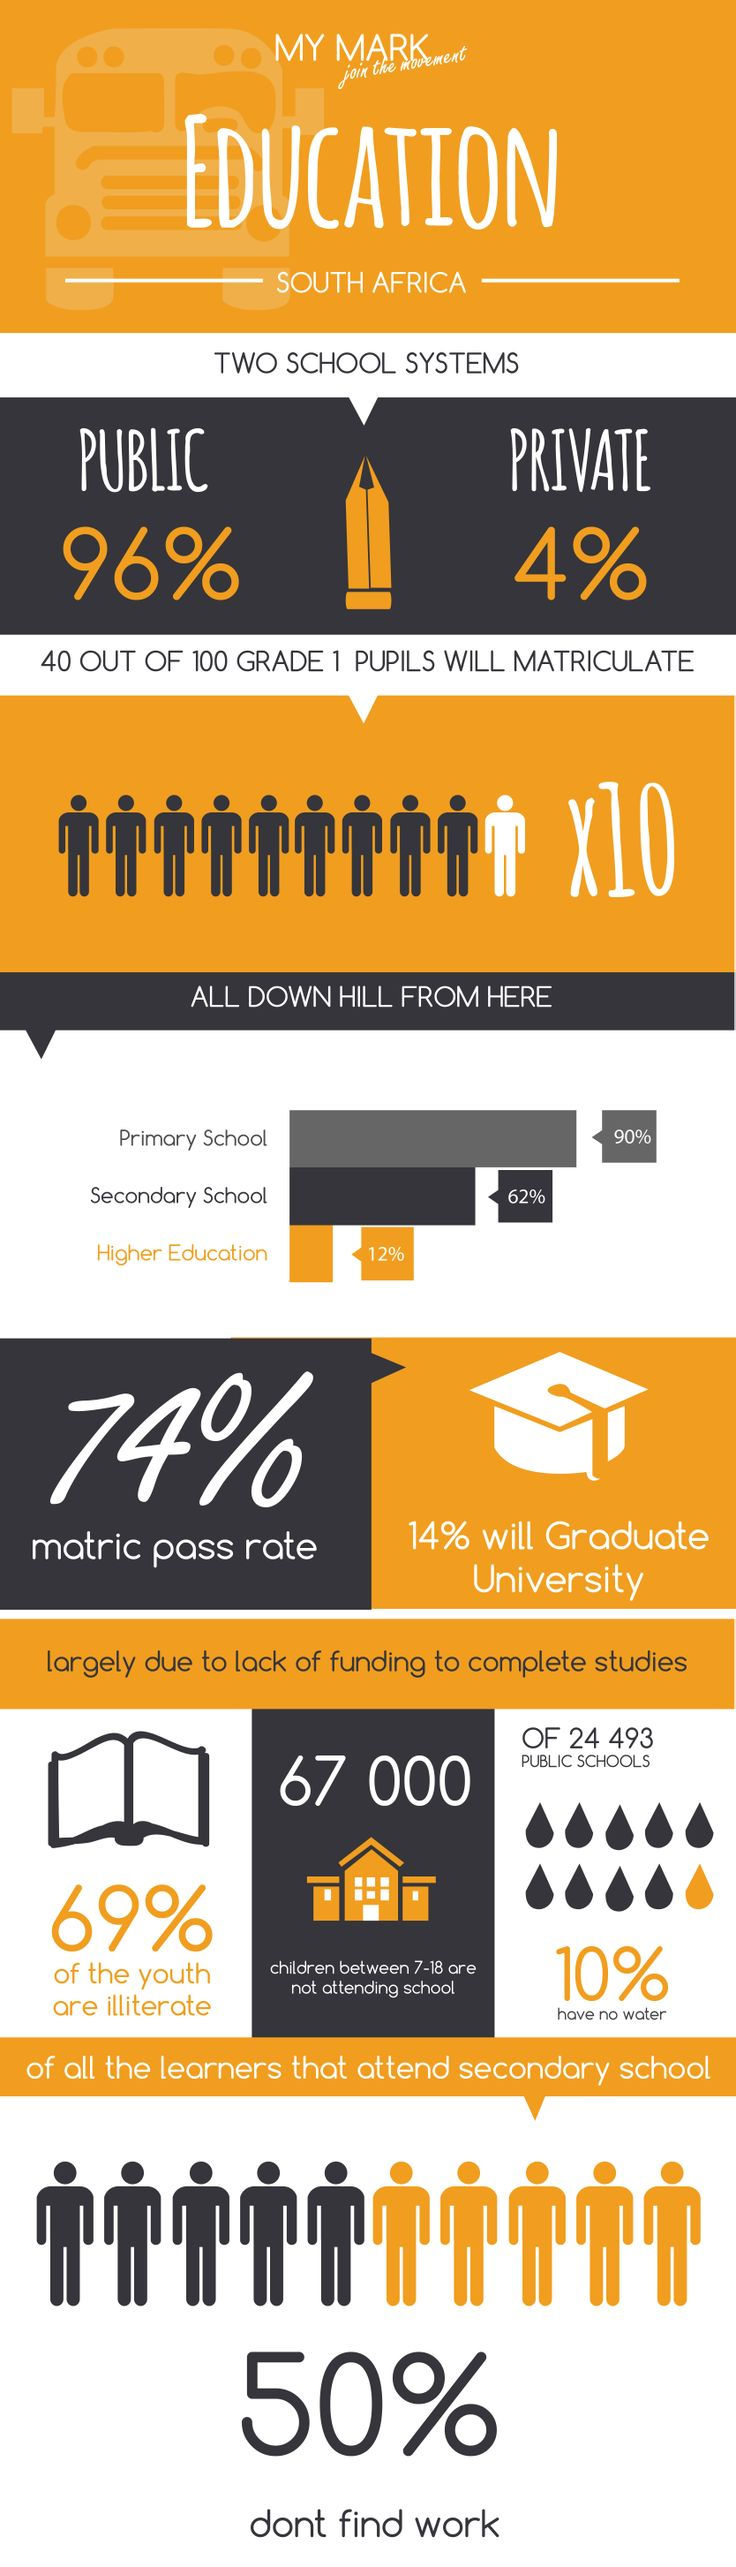 Info-graphic: Education in South Africa